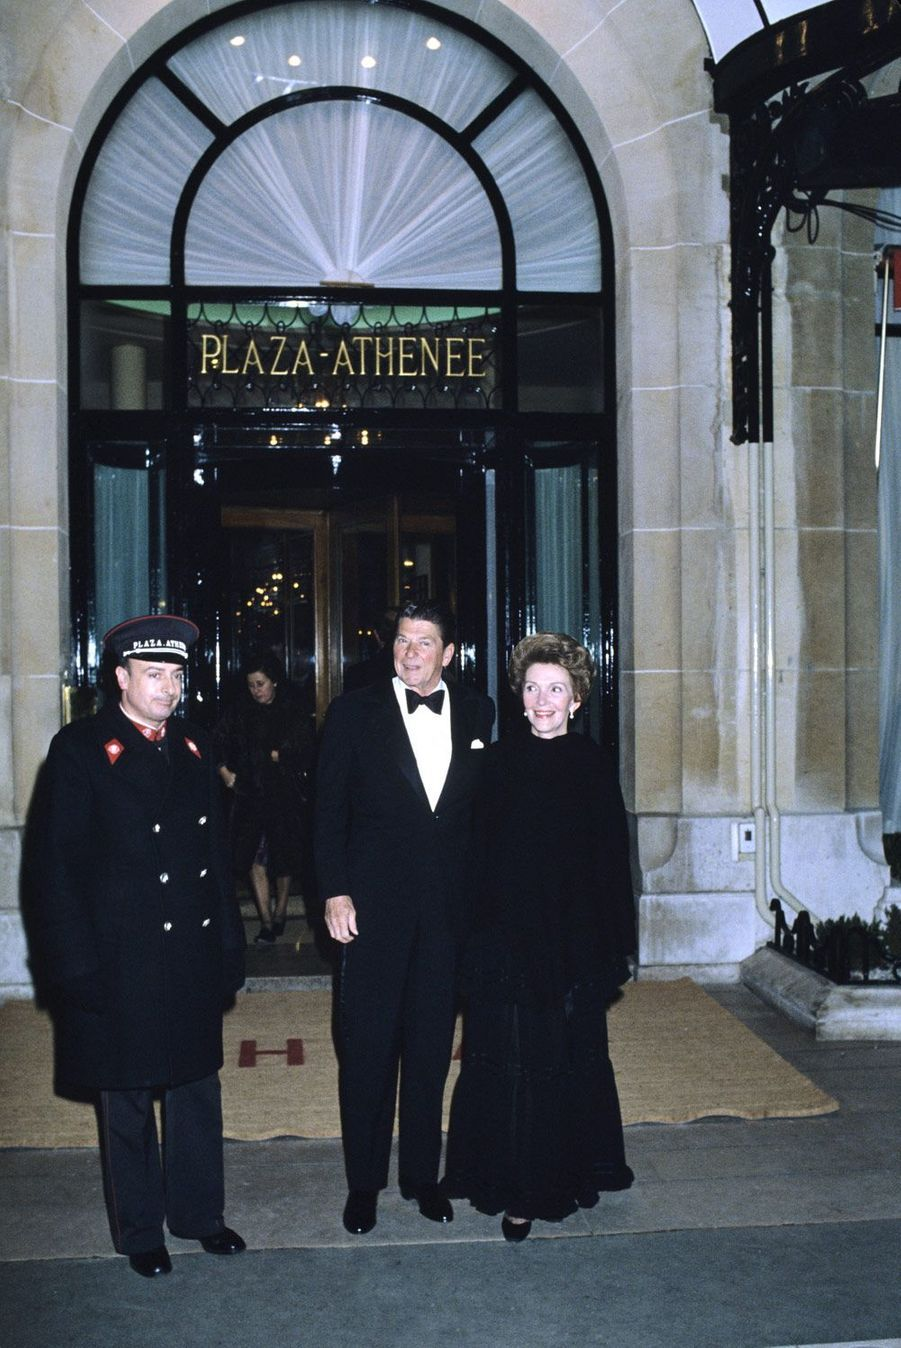 Ronald et Nancy Reagan à Paris en 1979 devant le Plaza Athénée